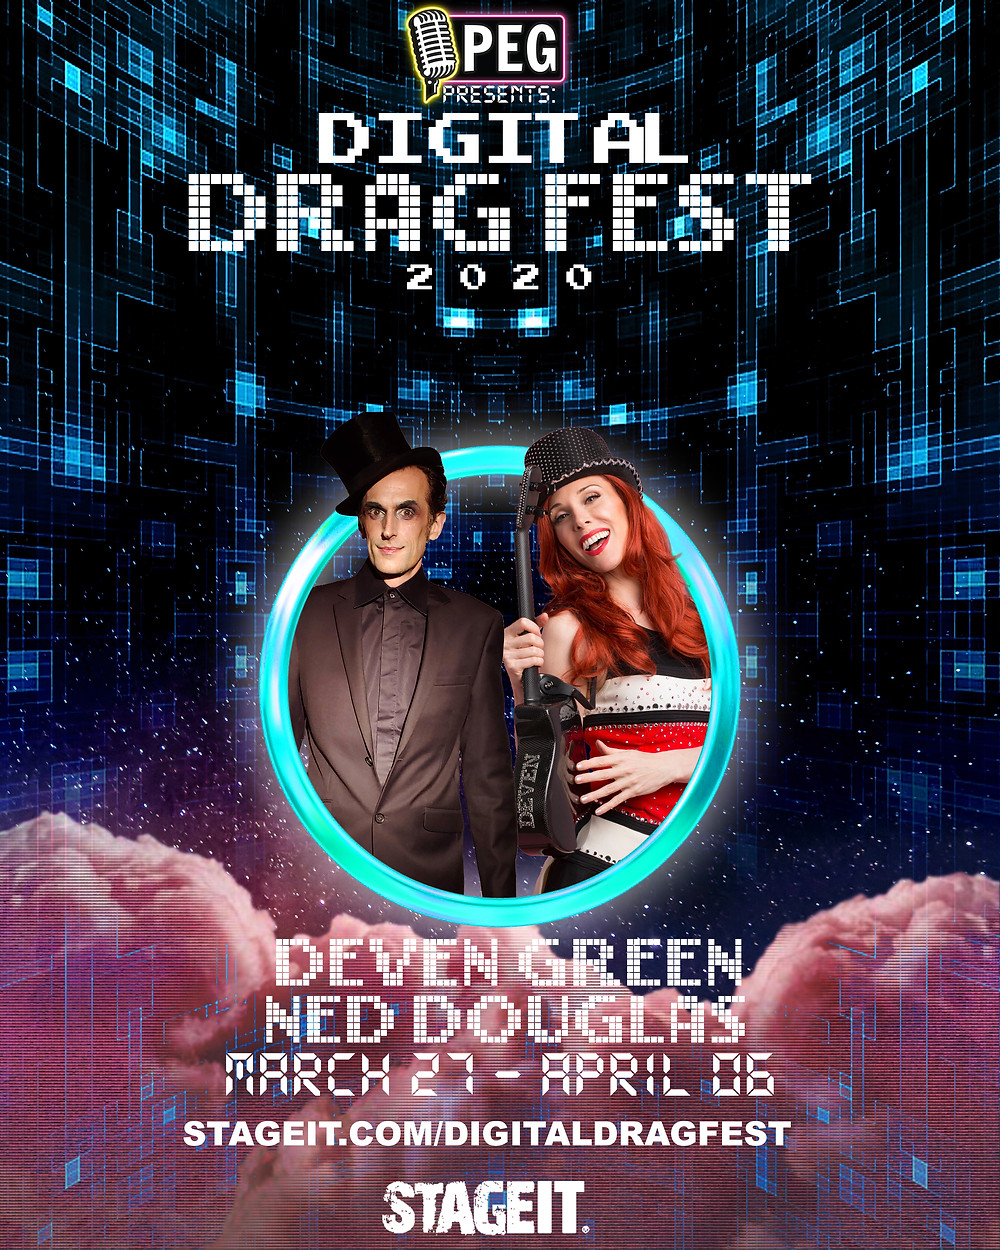 DEVEN GREEN PEG ENTERTAINMENT digital drag fest